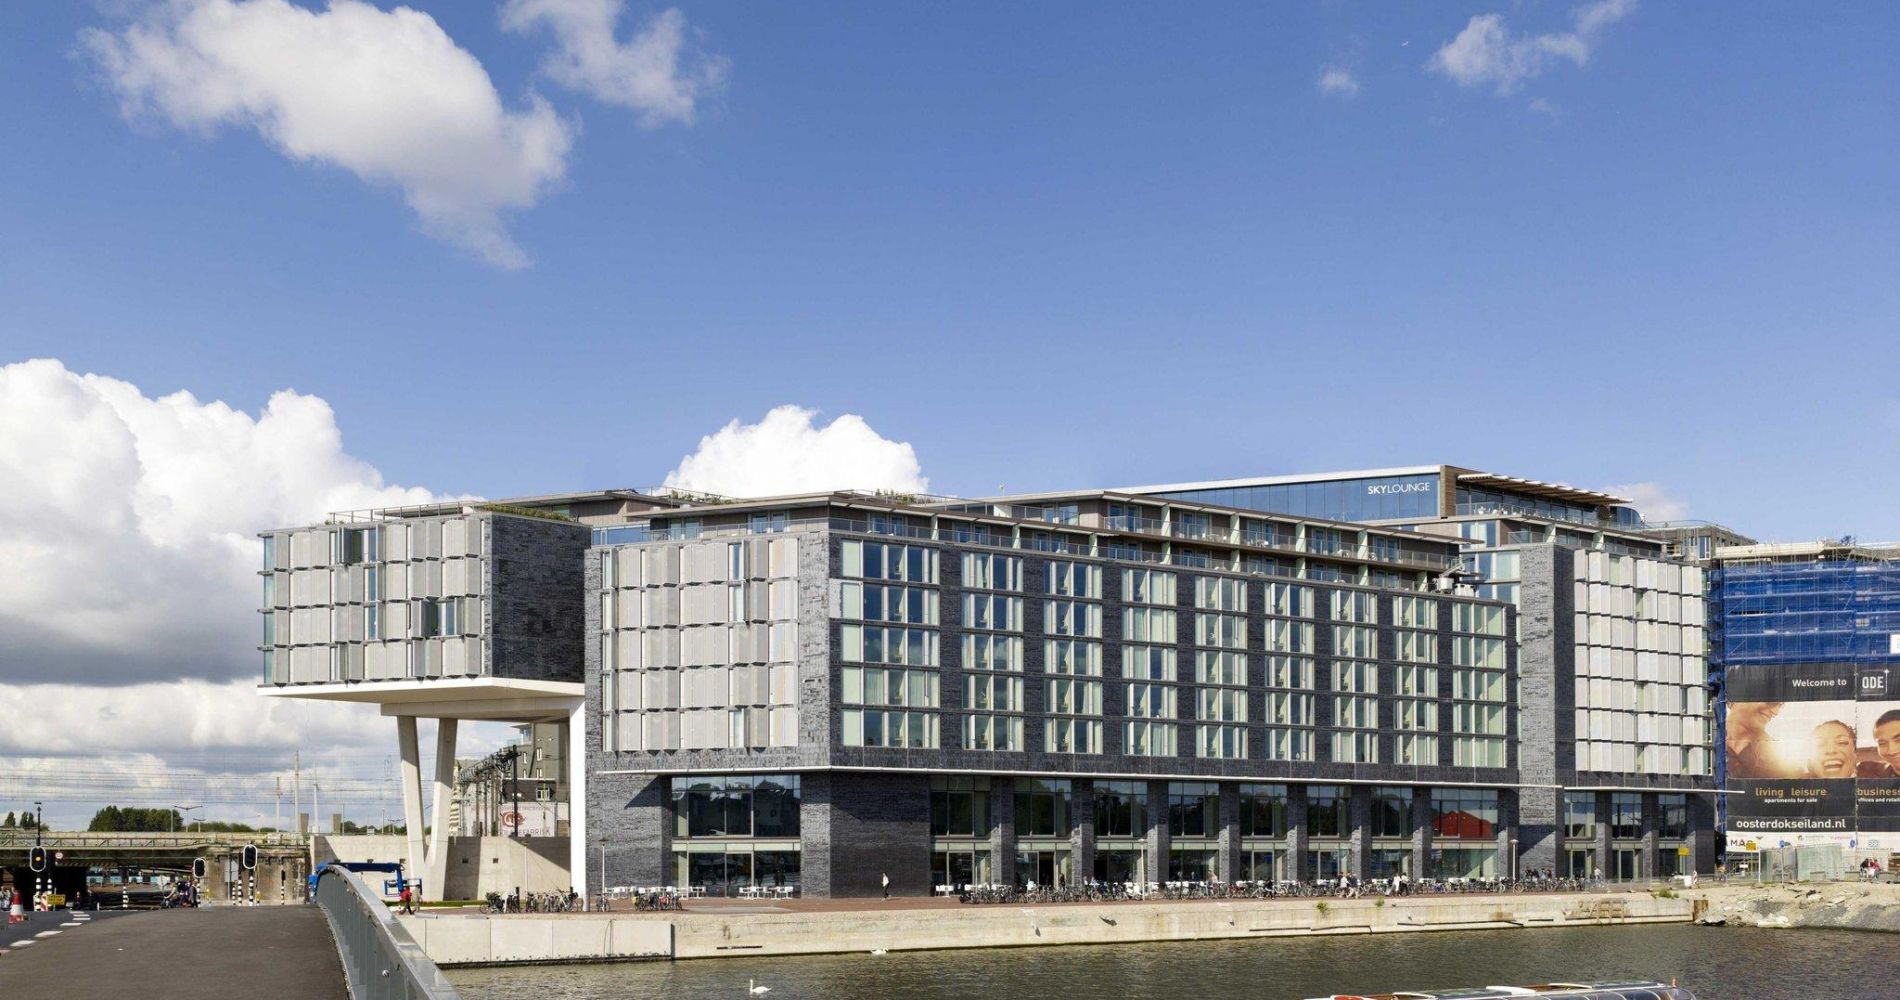 Doubletree by hilton hotel amsterdam centraal station best for Hotel amsterdam stazione